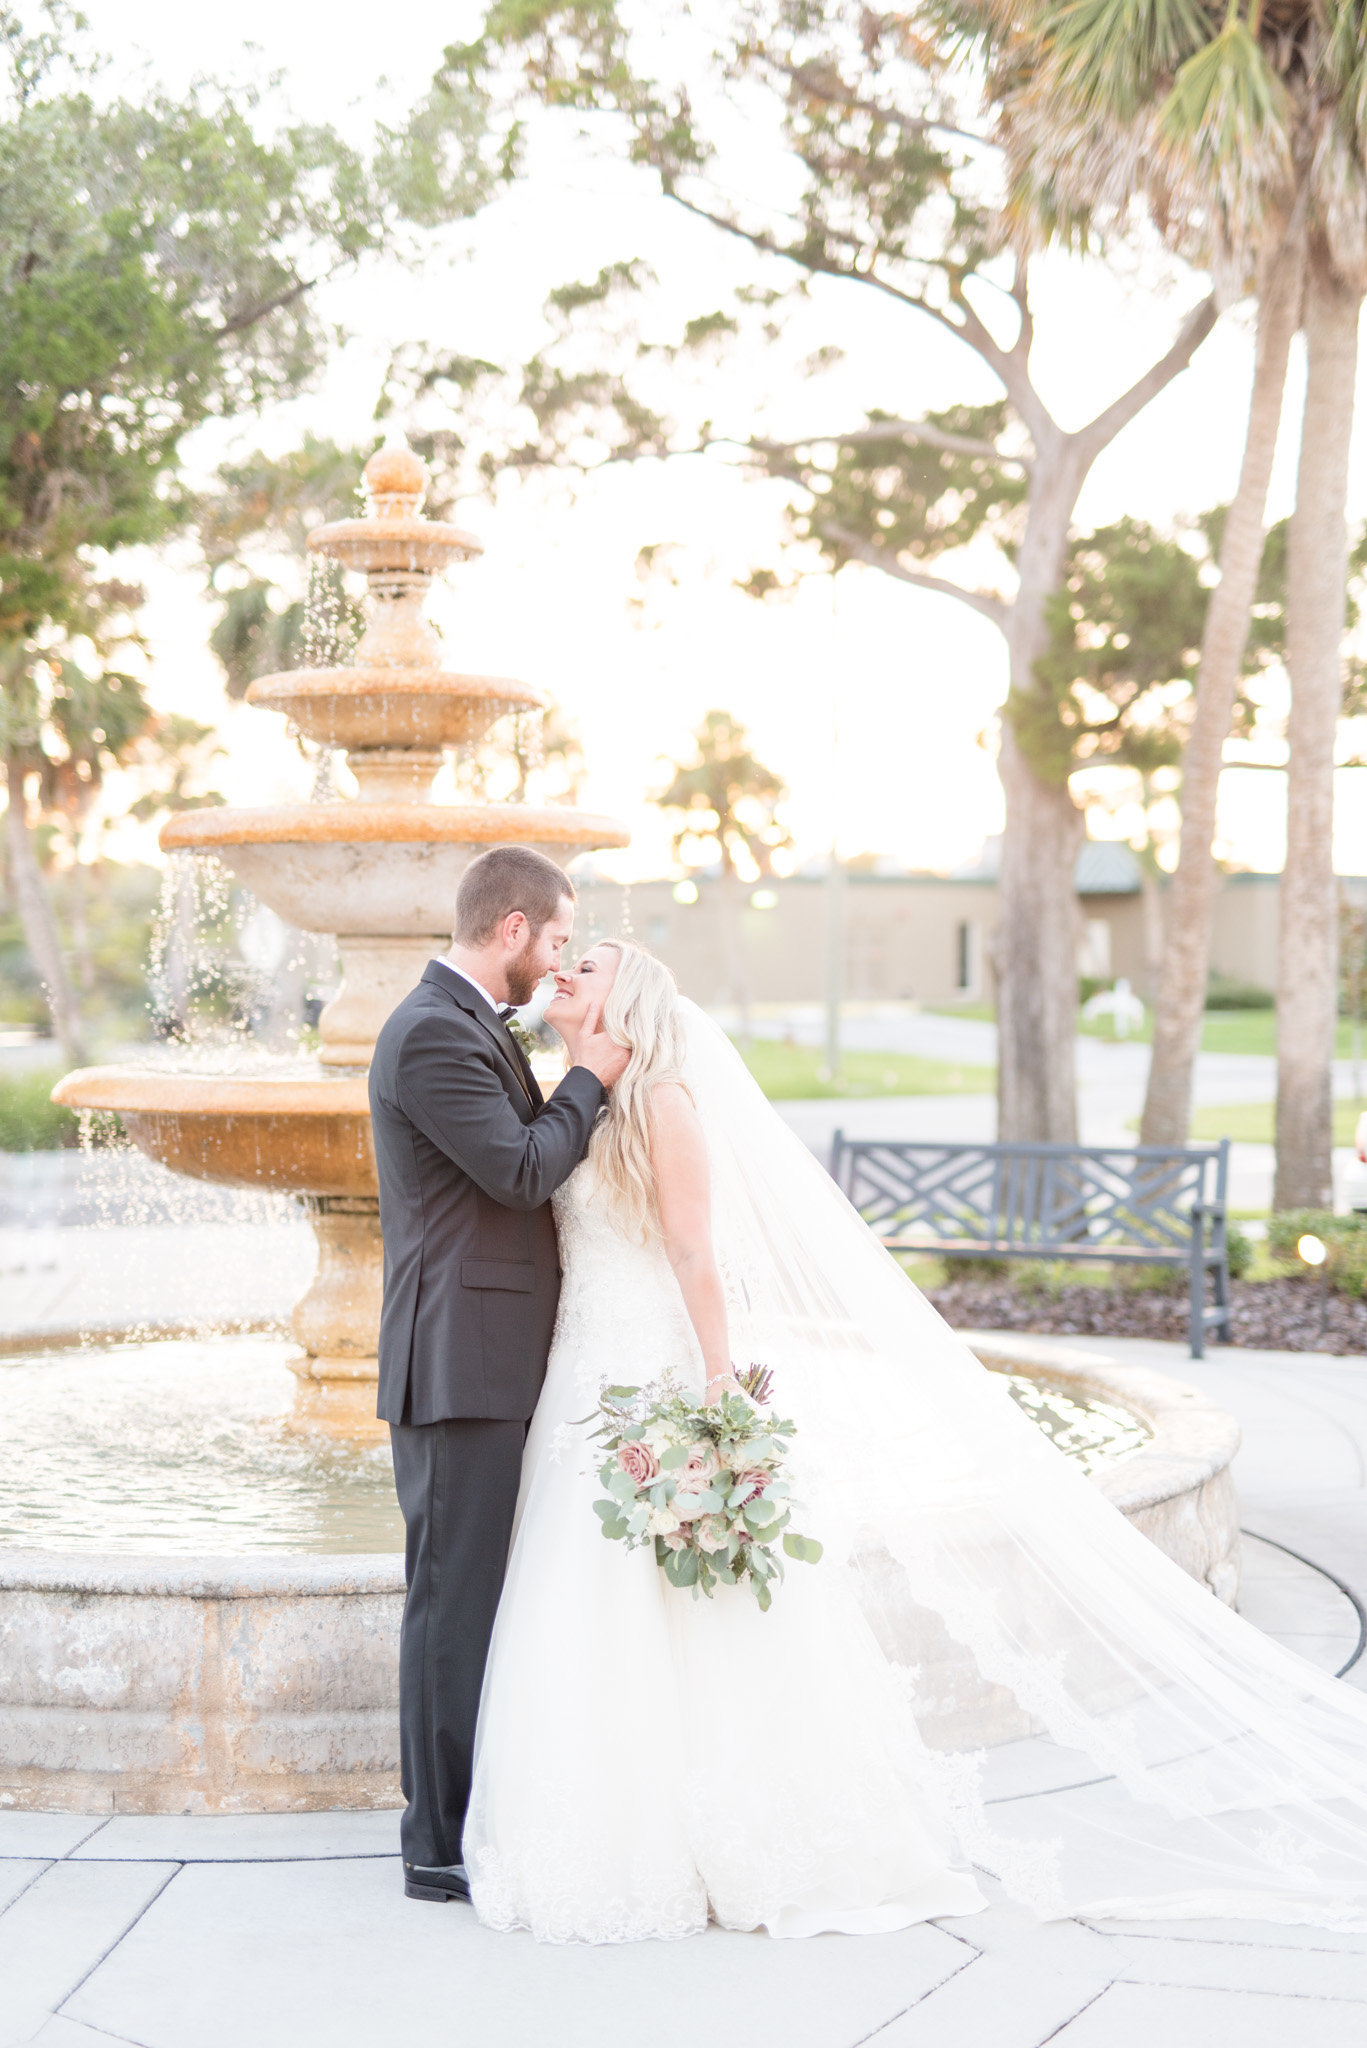 Bride and Groom kiss in front of fountain.